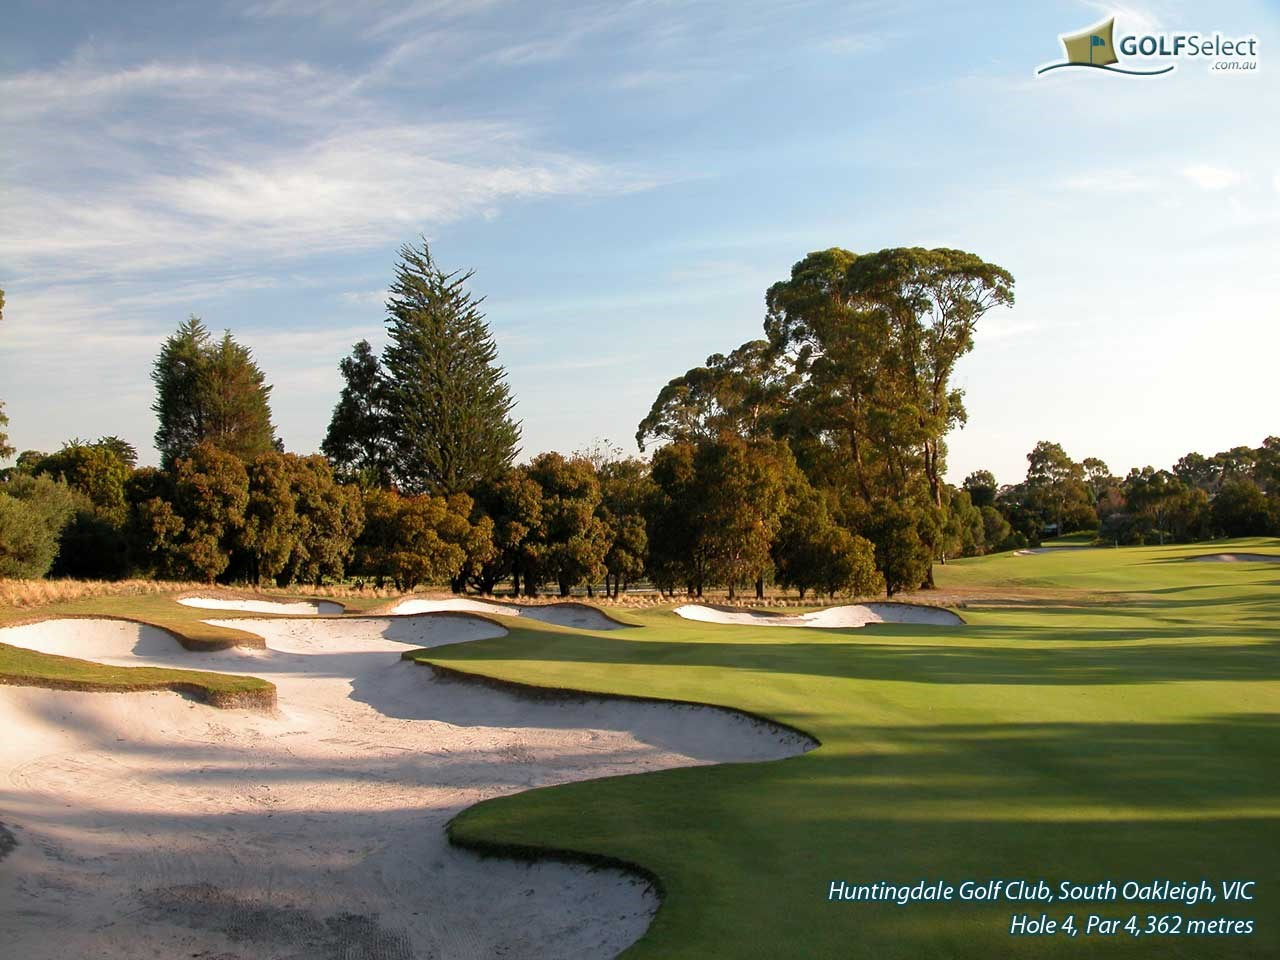 Huntingdale Golf Club Hole 4, Par 4, 362 metres